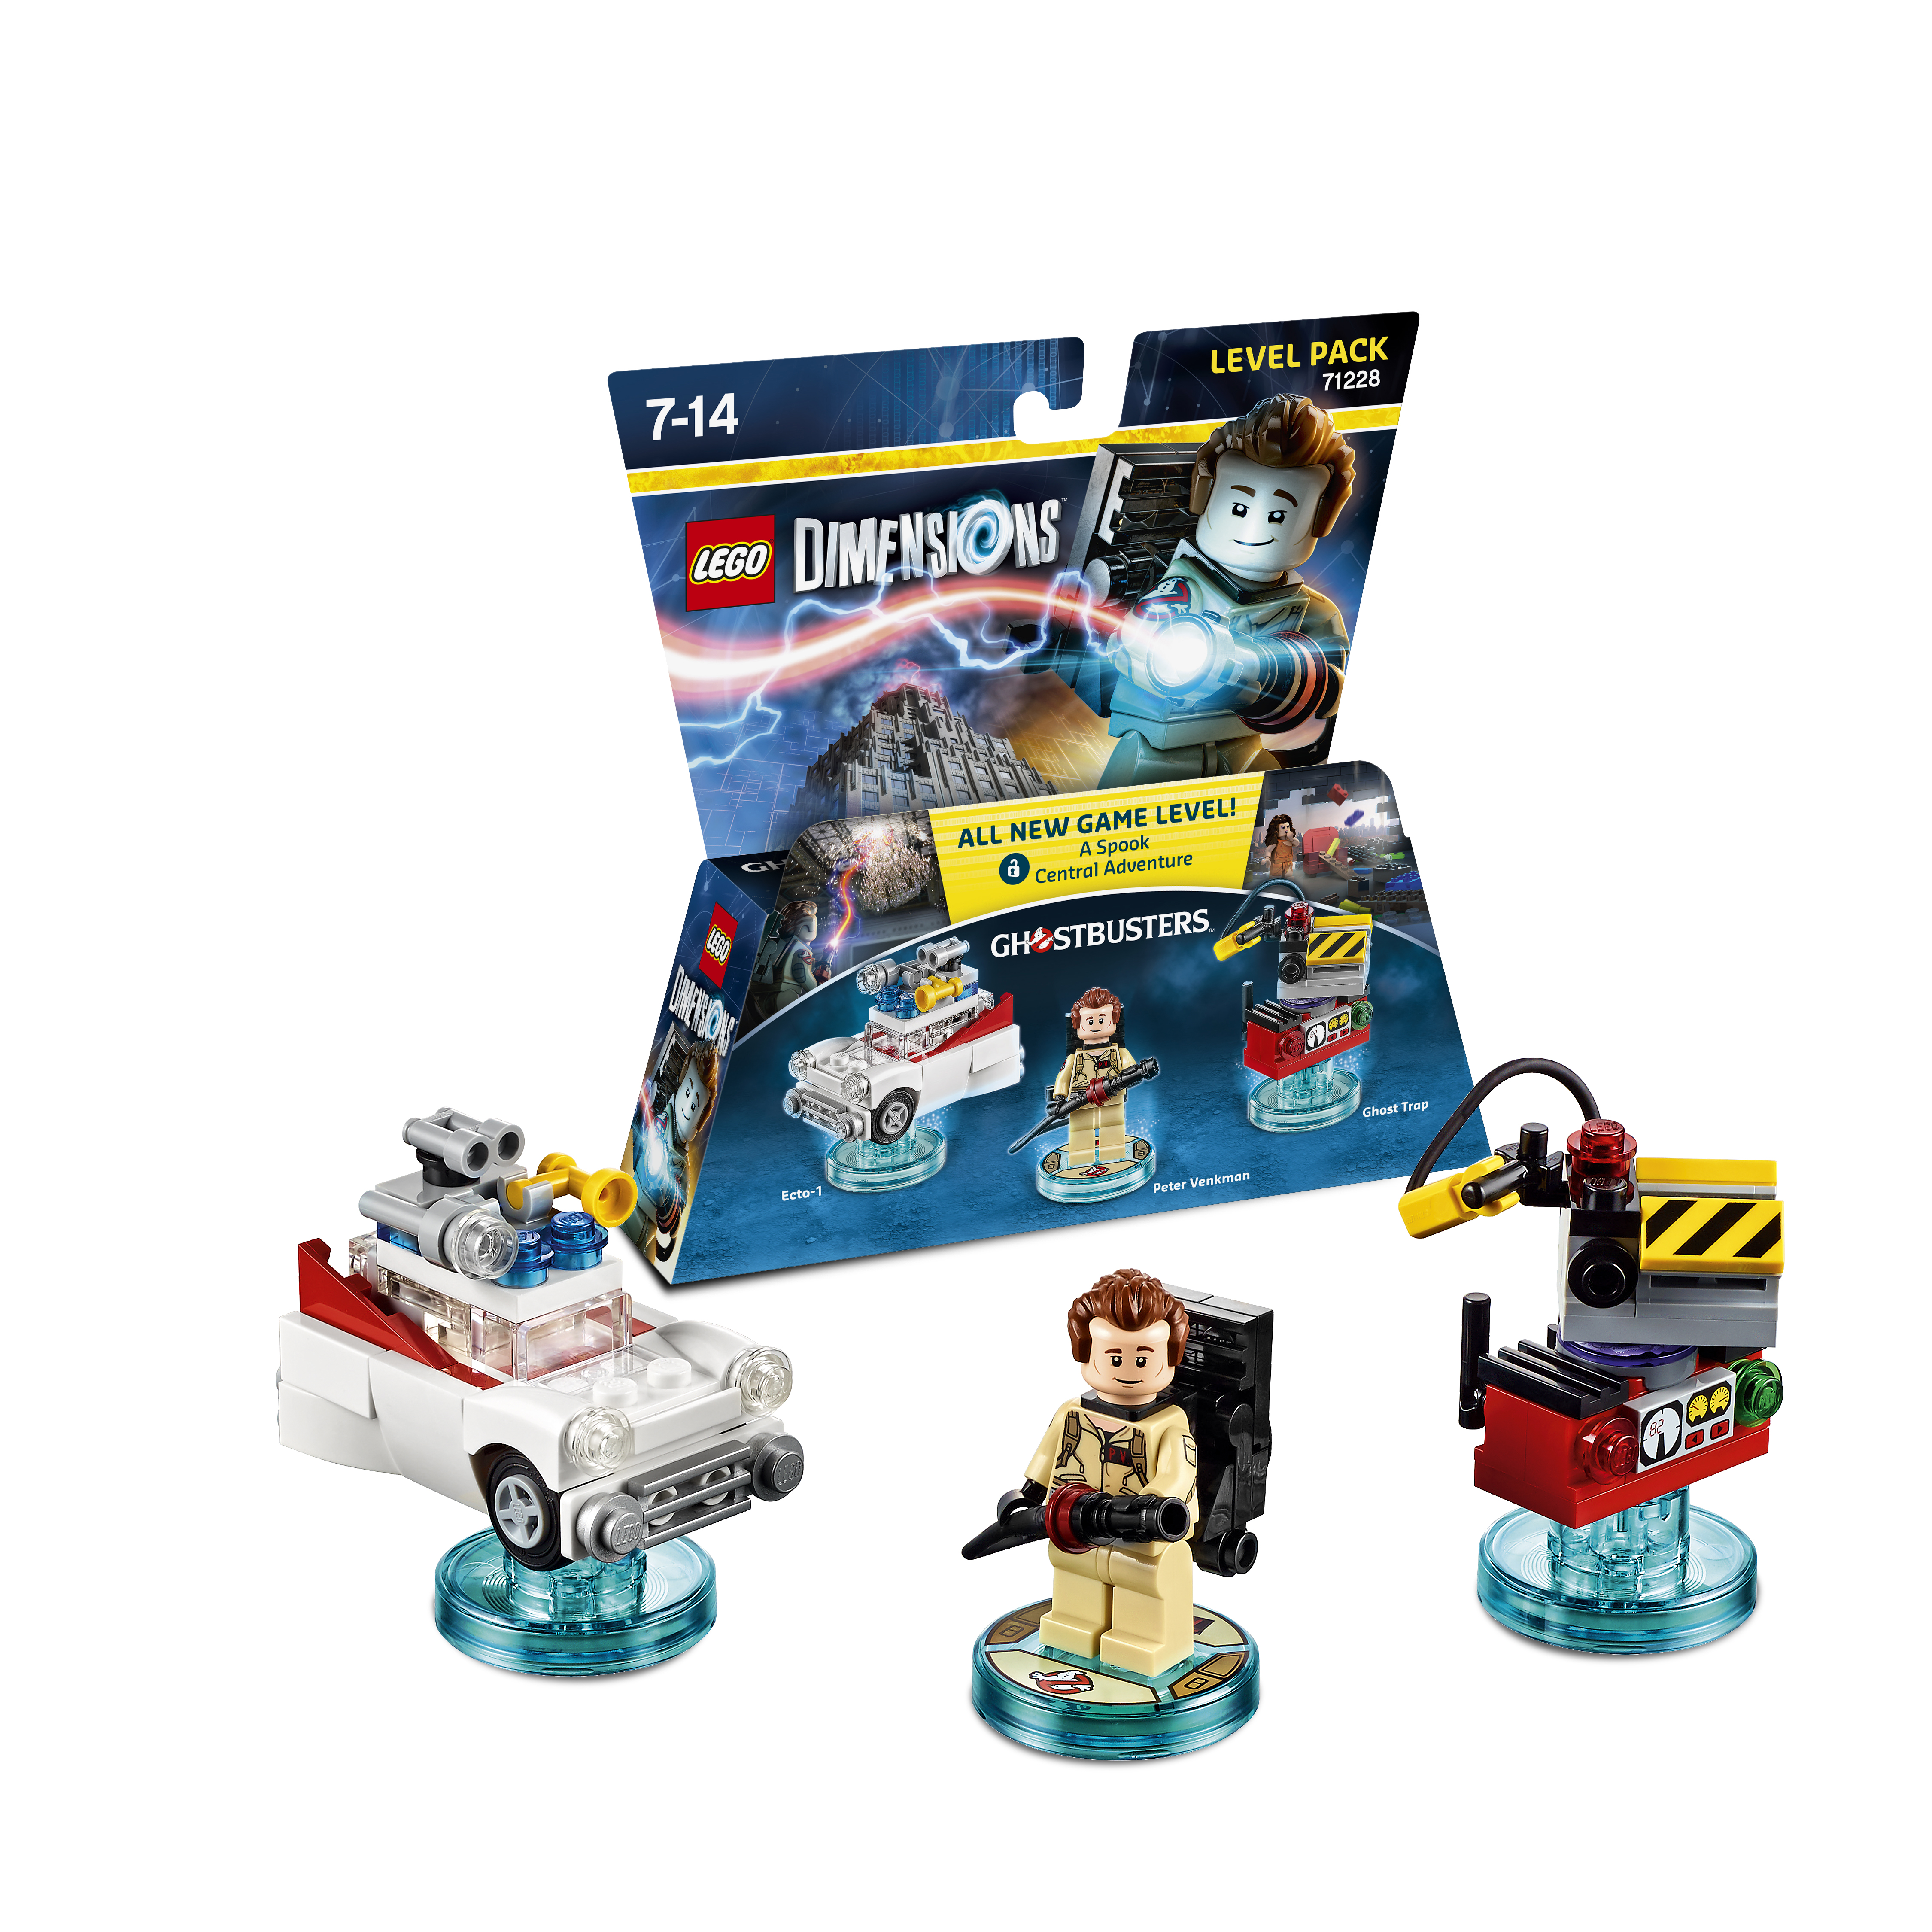 Ghostbusters Bricking Around Lego 75828 Ecto 1 Ampamp 2 Expansionpack International Ghostbusterslevelpack 71228 1438670623